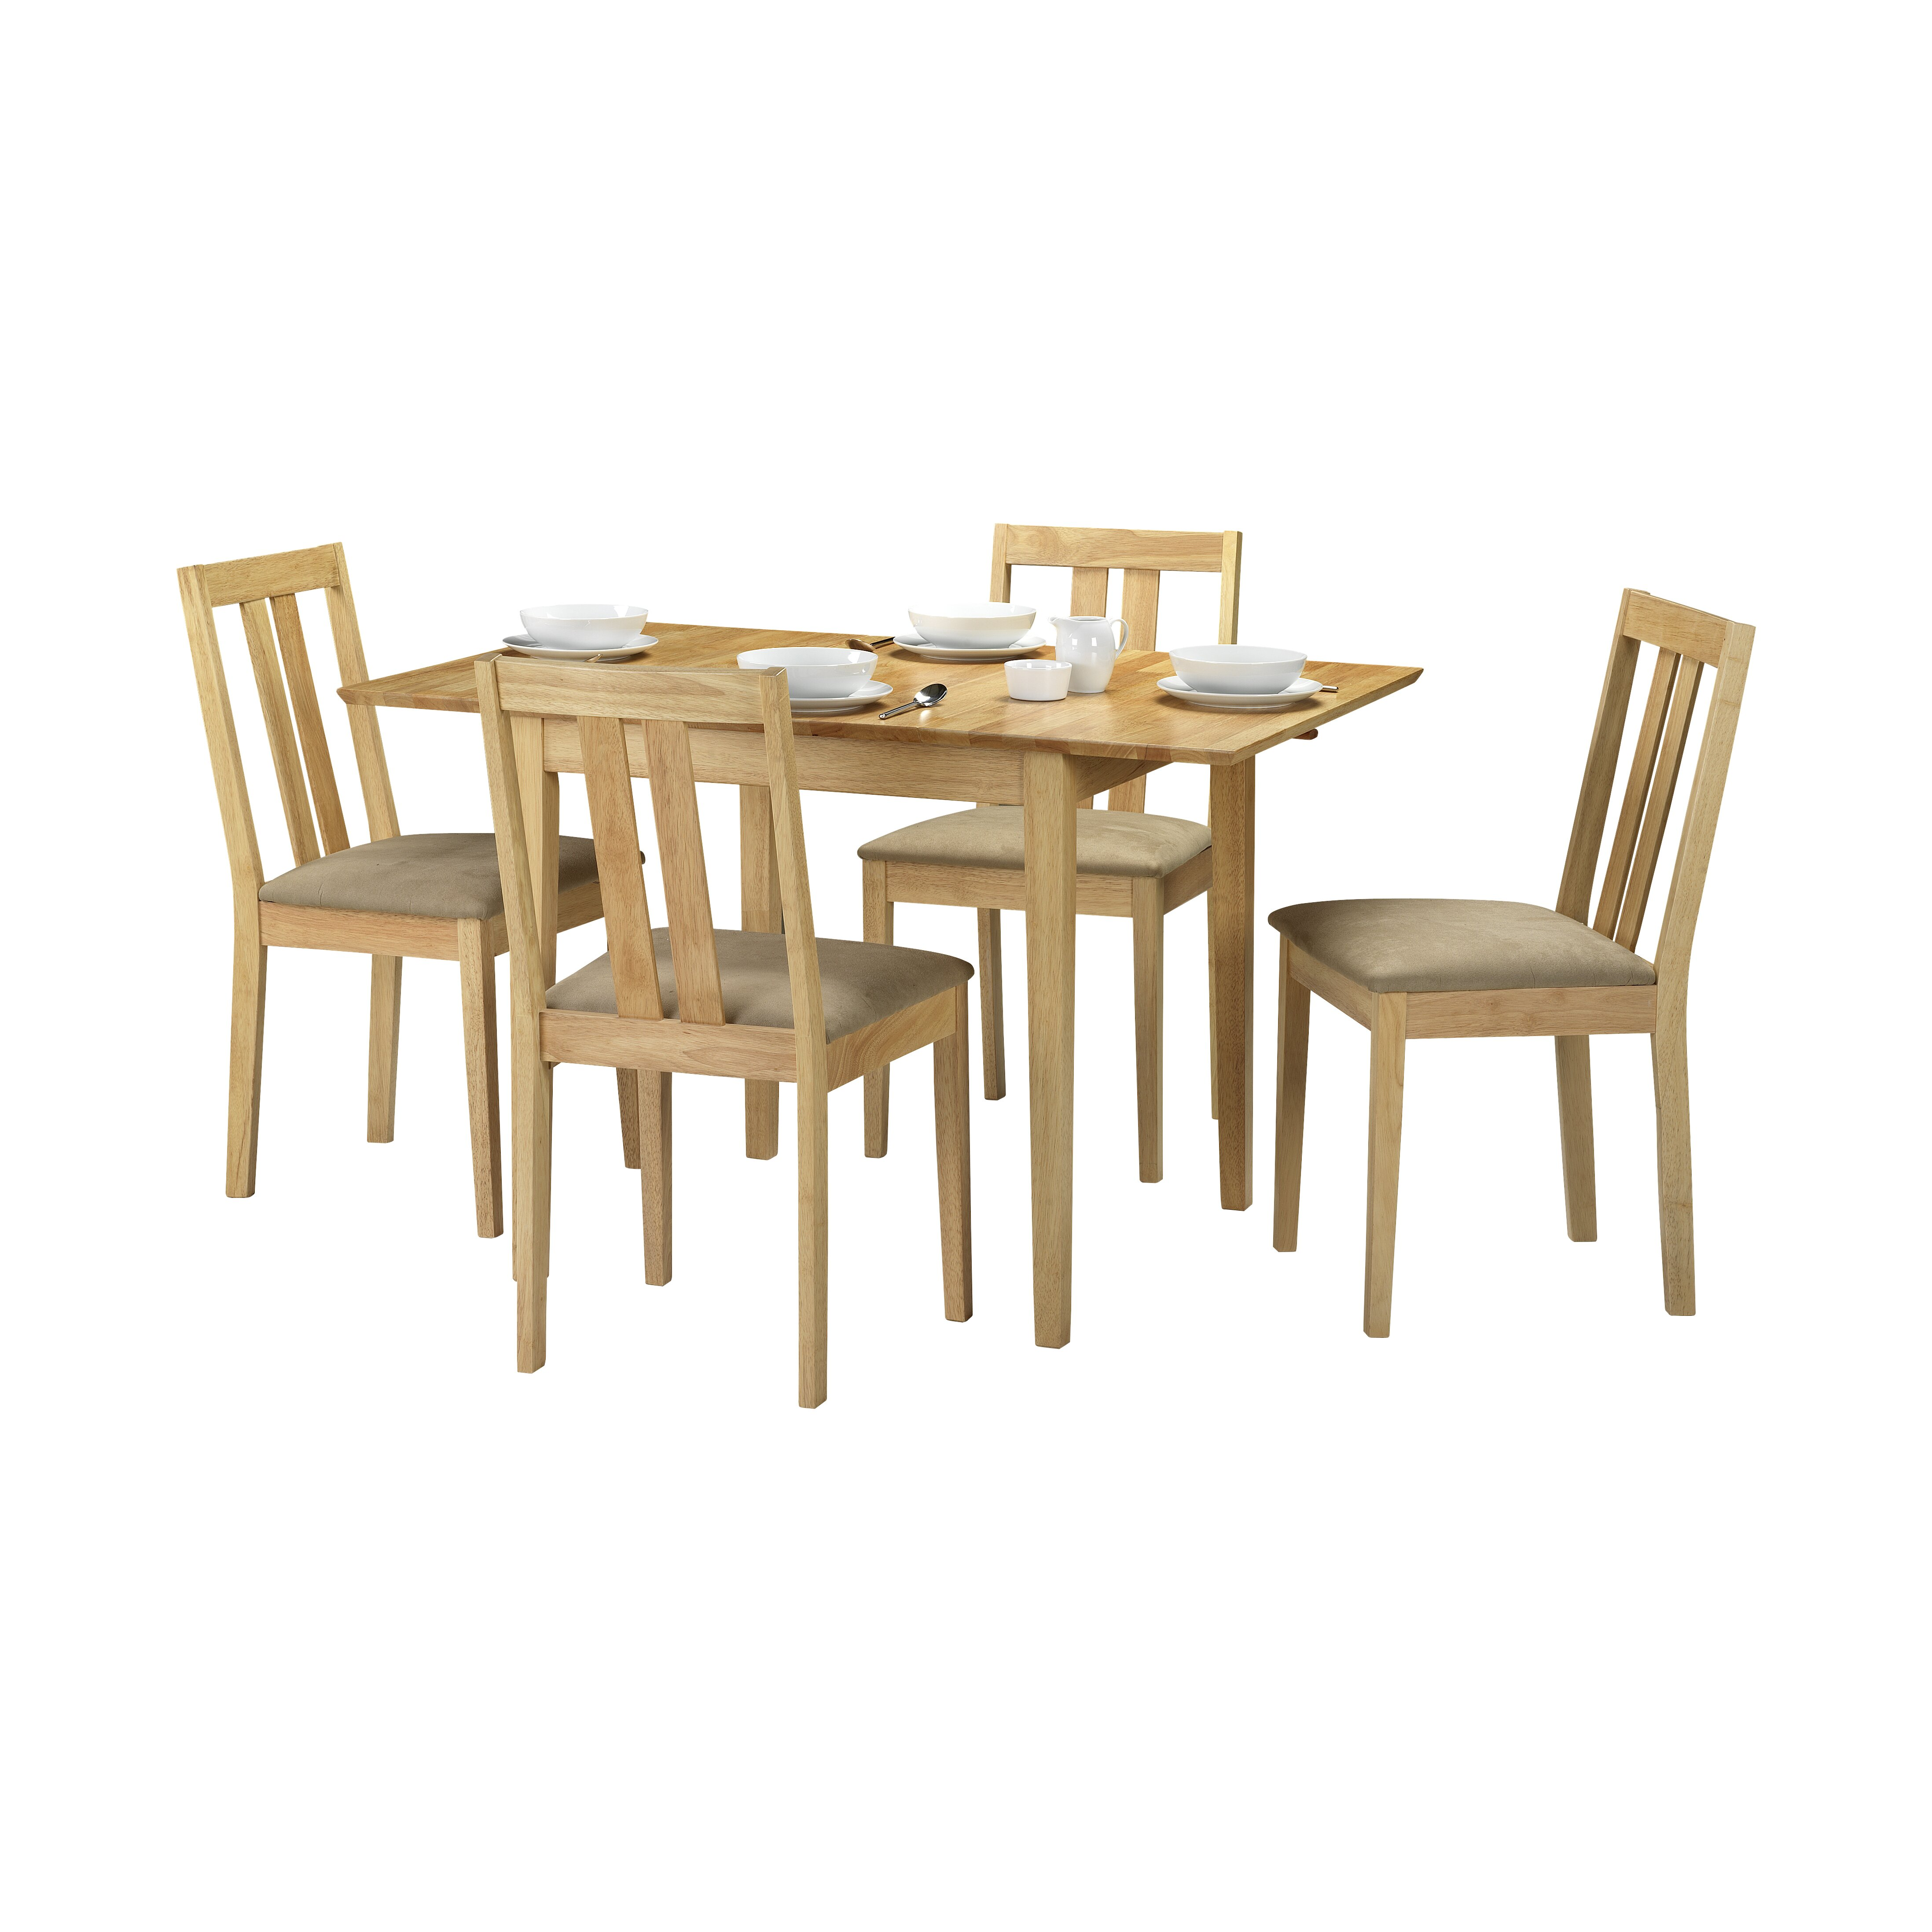 Dining table and chairs cherry dining table set 10 for 10 seater square dining table